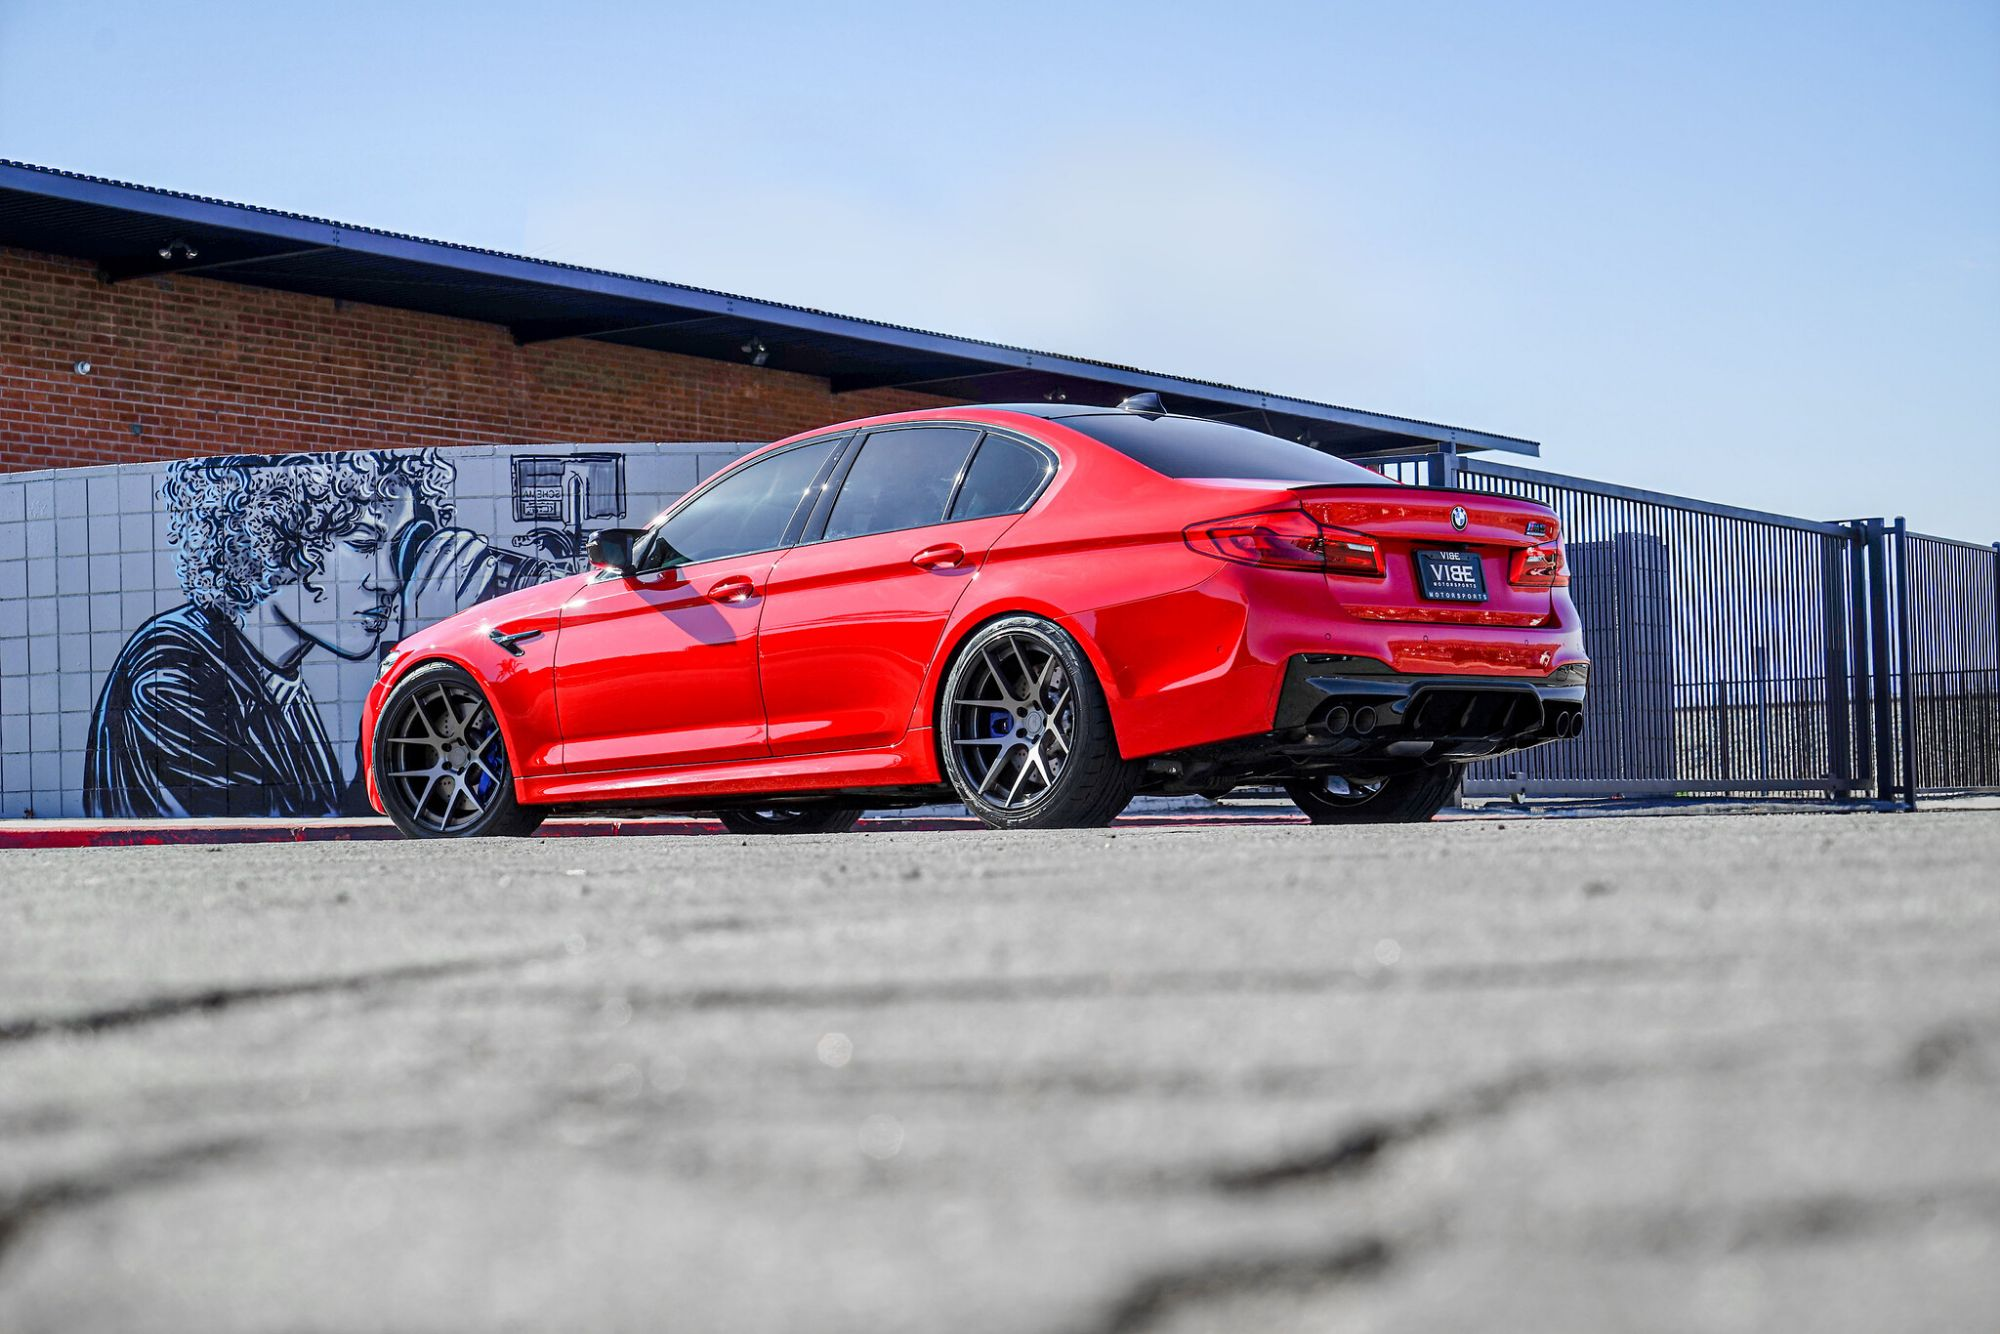 Bmw M5 F90 Red On Bc Forged Hb05 Aftermarket Wheels Wheel Front